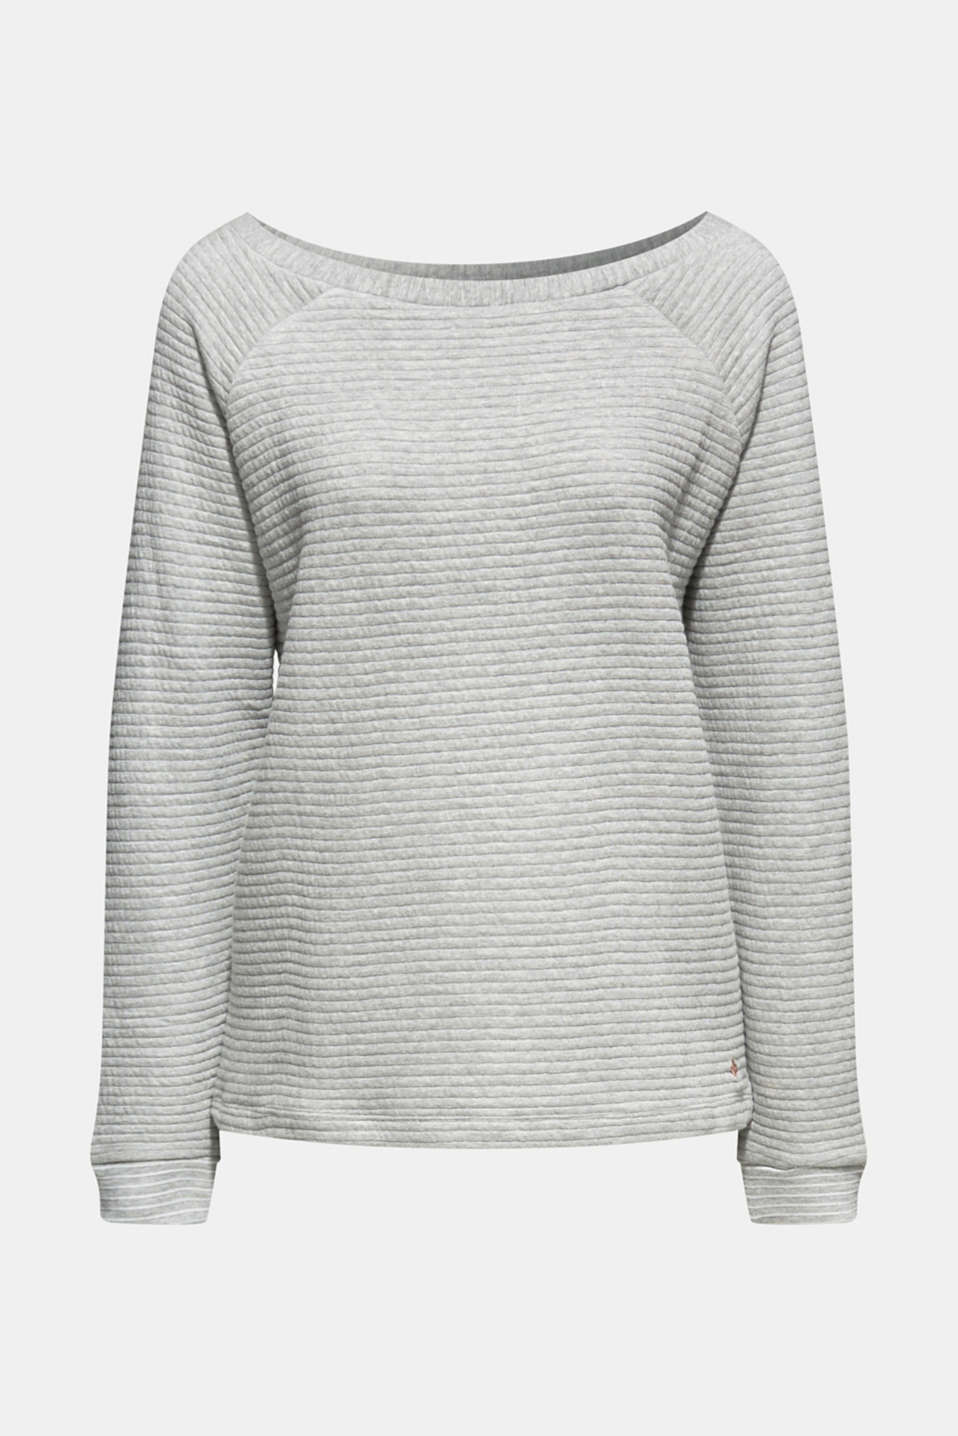 Sweatshirt with a distinctive ribbed texture, MEDIUM GREY, detail image number 6